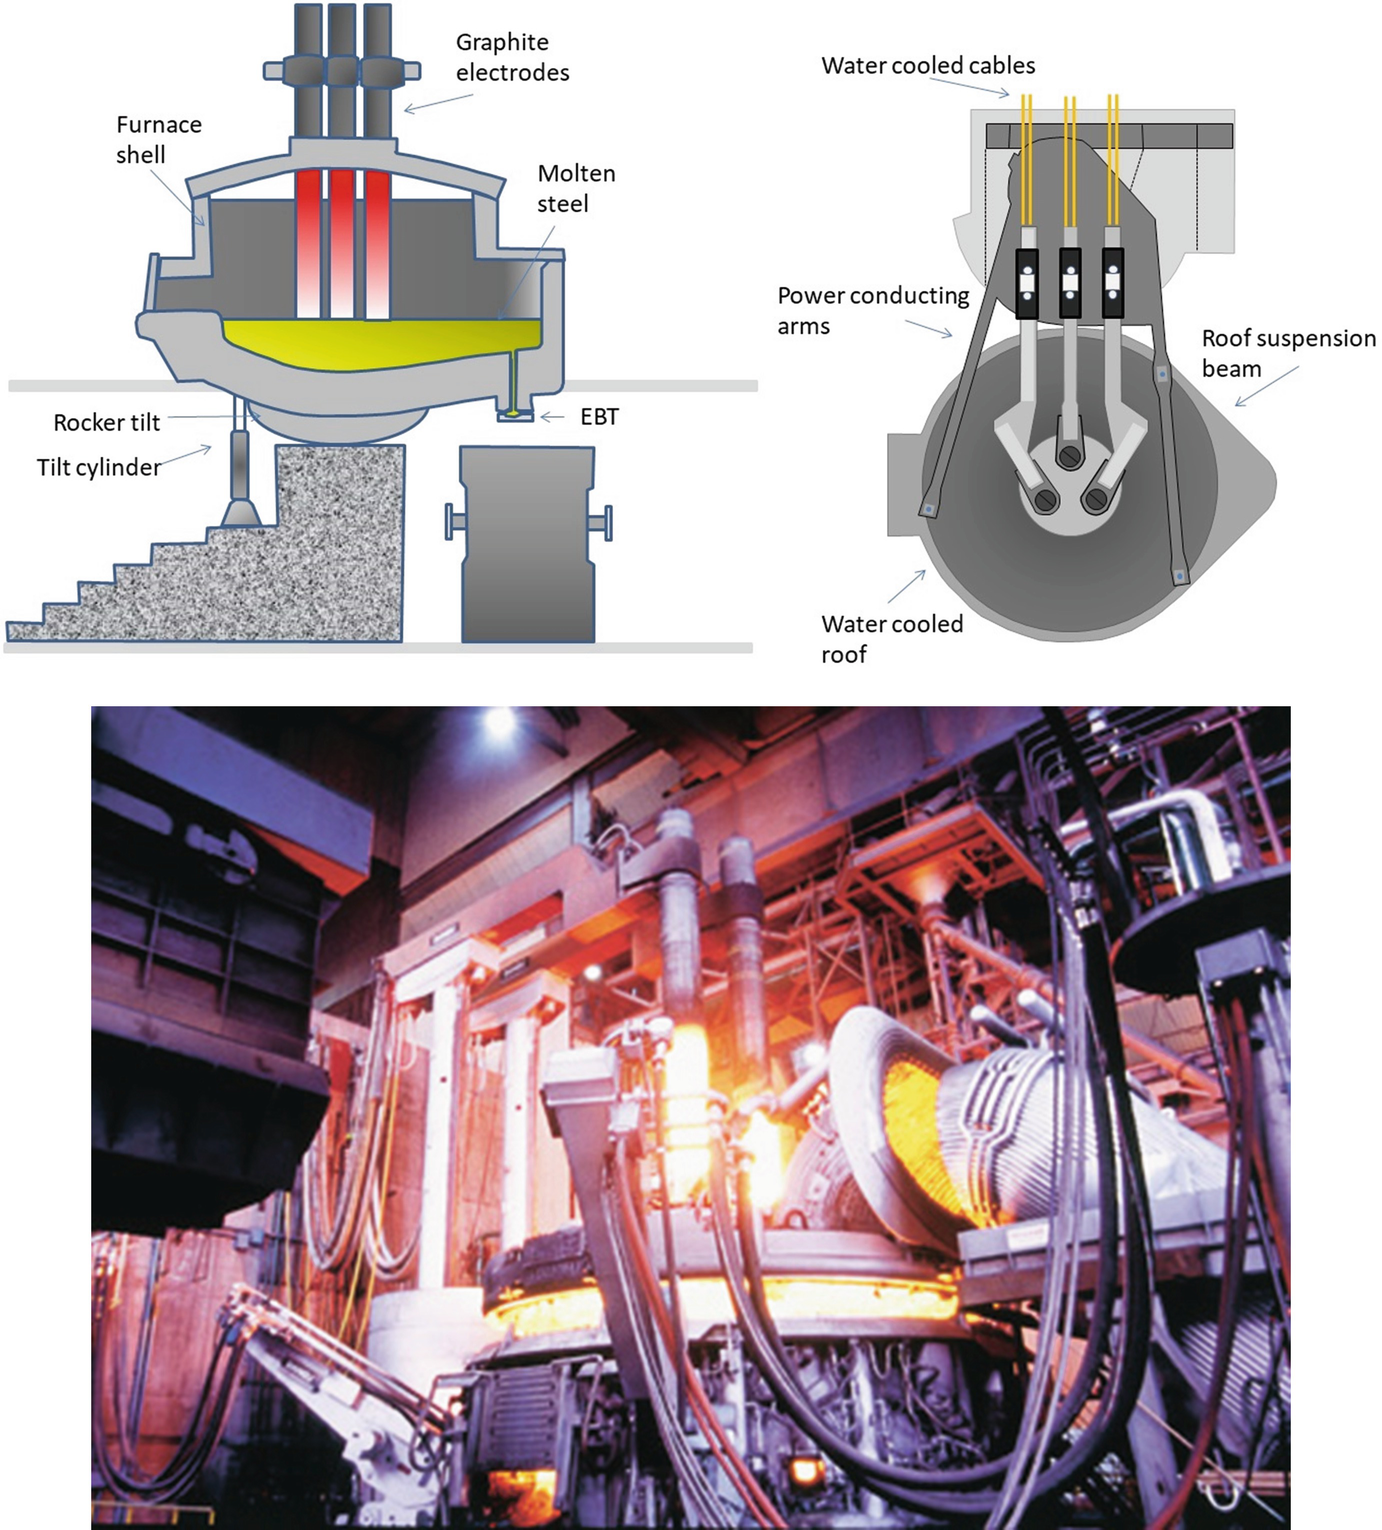 Electric Arc Furnace: Most Efficient Technologies for